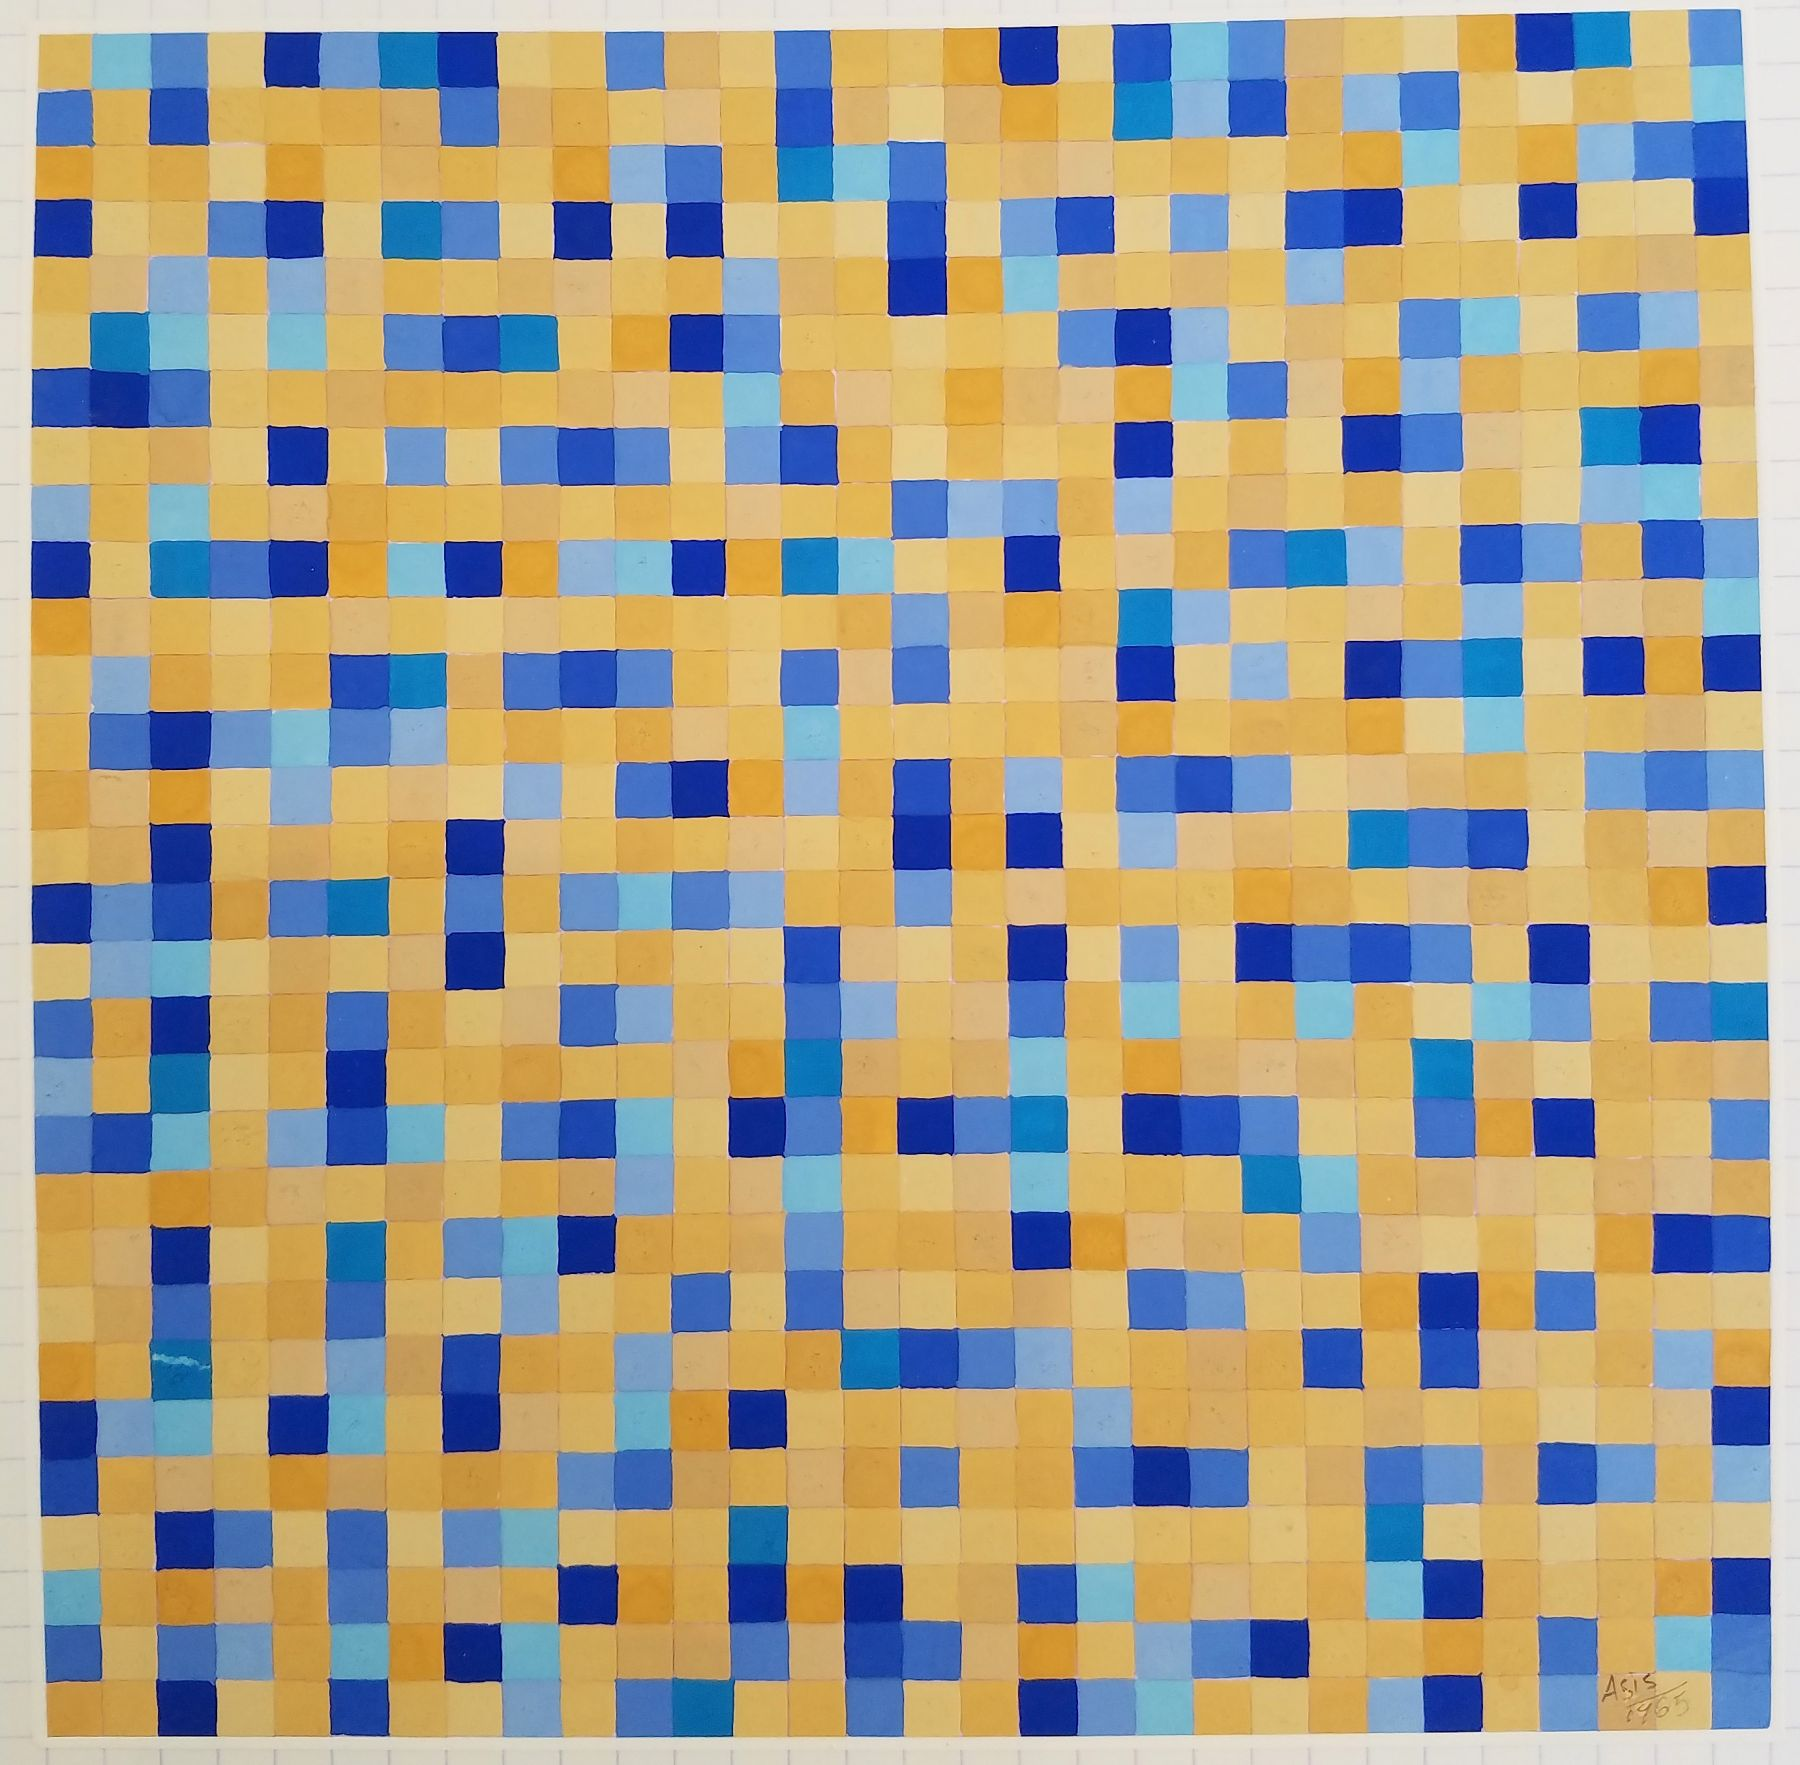 Antonio Asis,Untitled from the series Chromatisme Quadrillé Polychrome, 1965, Gouache on paper,11 3/4 x 8 3/8 in. (29.8 x 21.2 cm.)